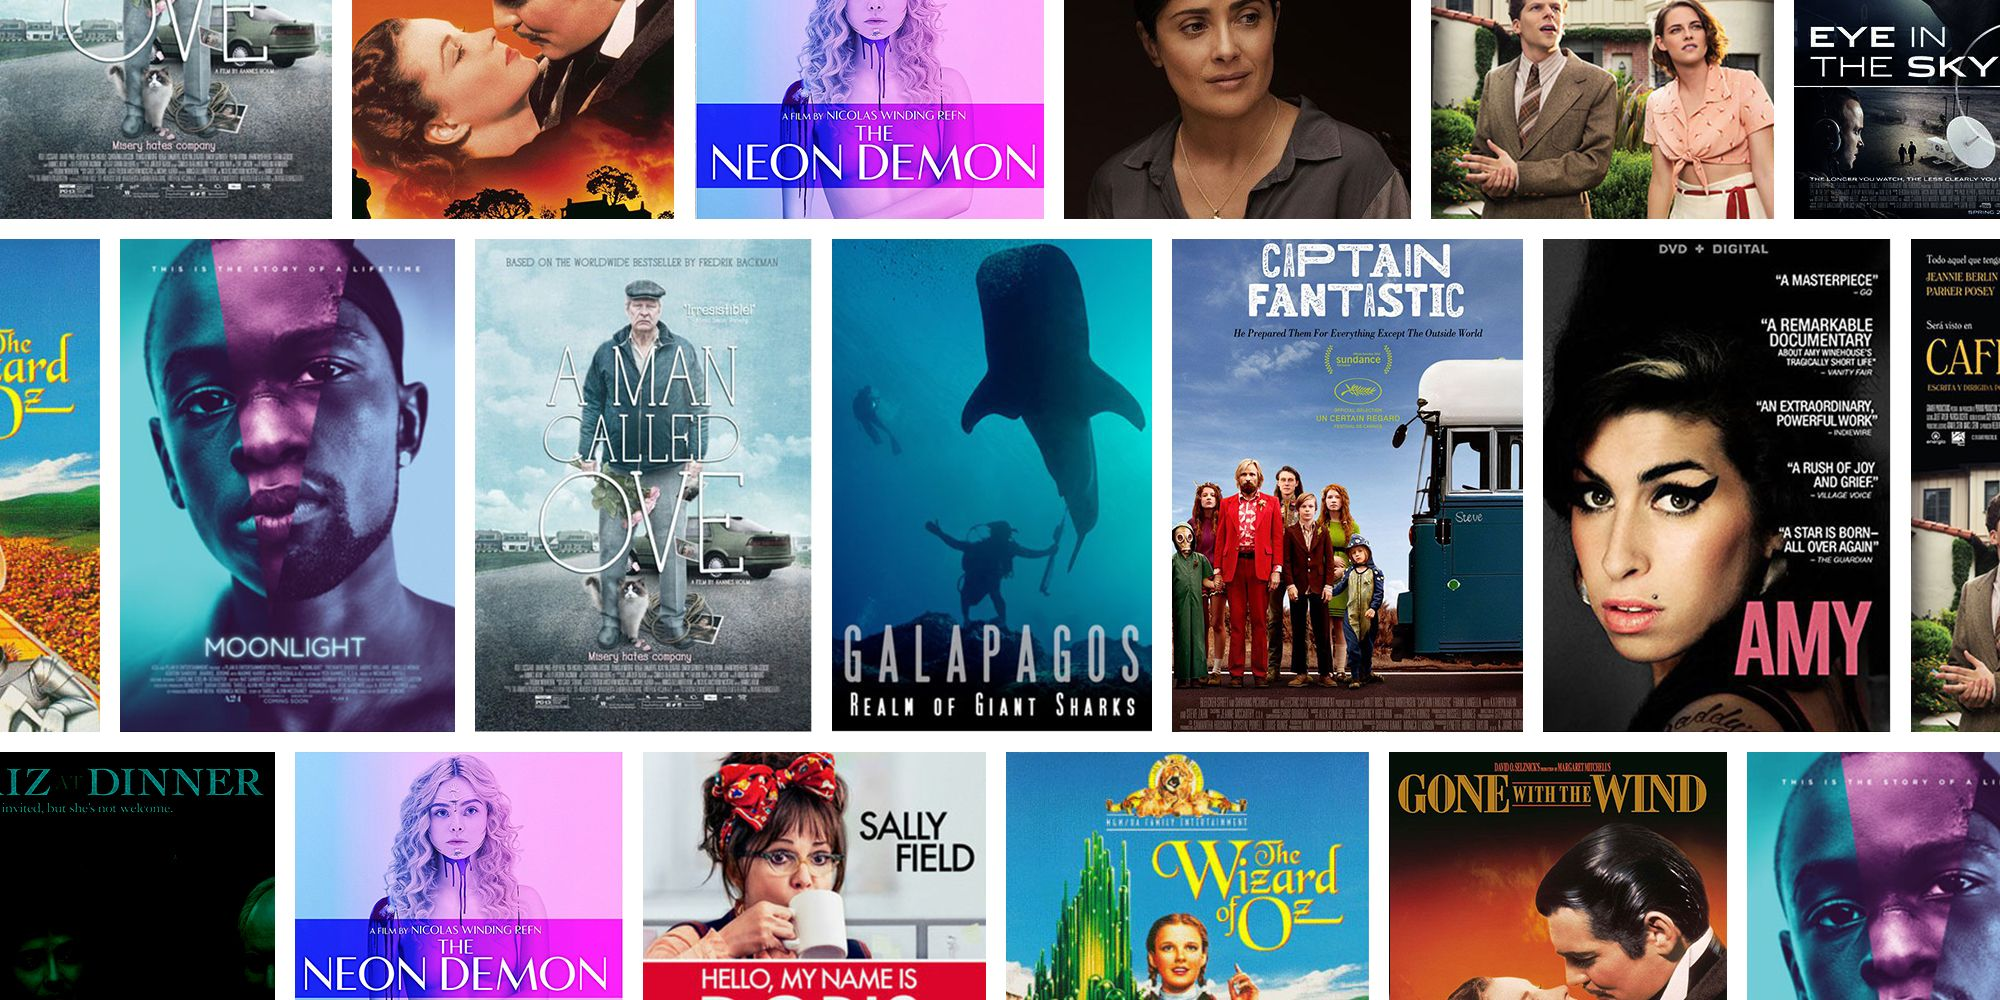 30 Best Movies on Amazon Prime 2018 - Top Films on Amazon Prime Right Now